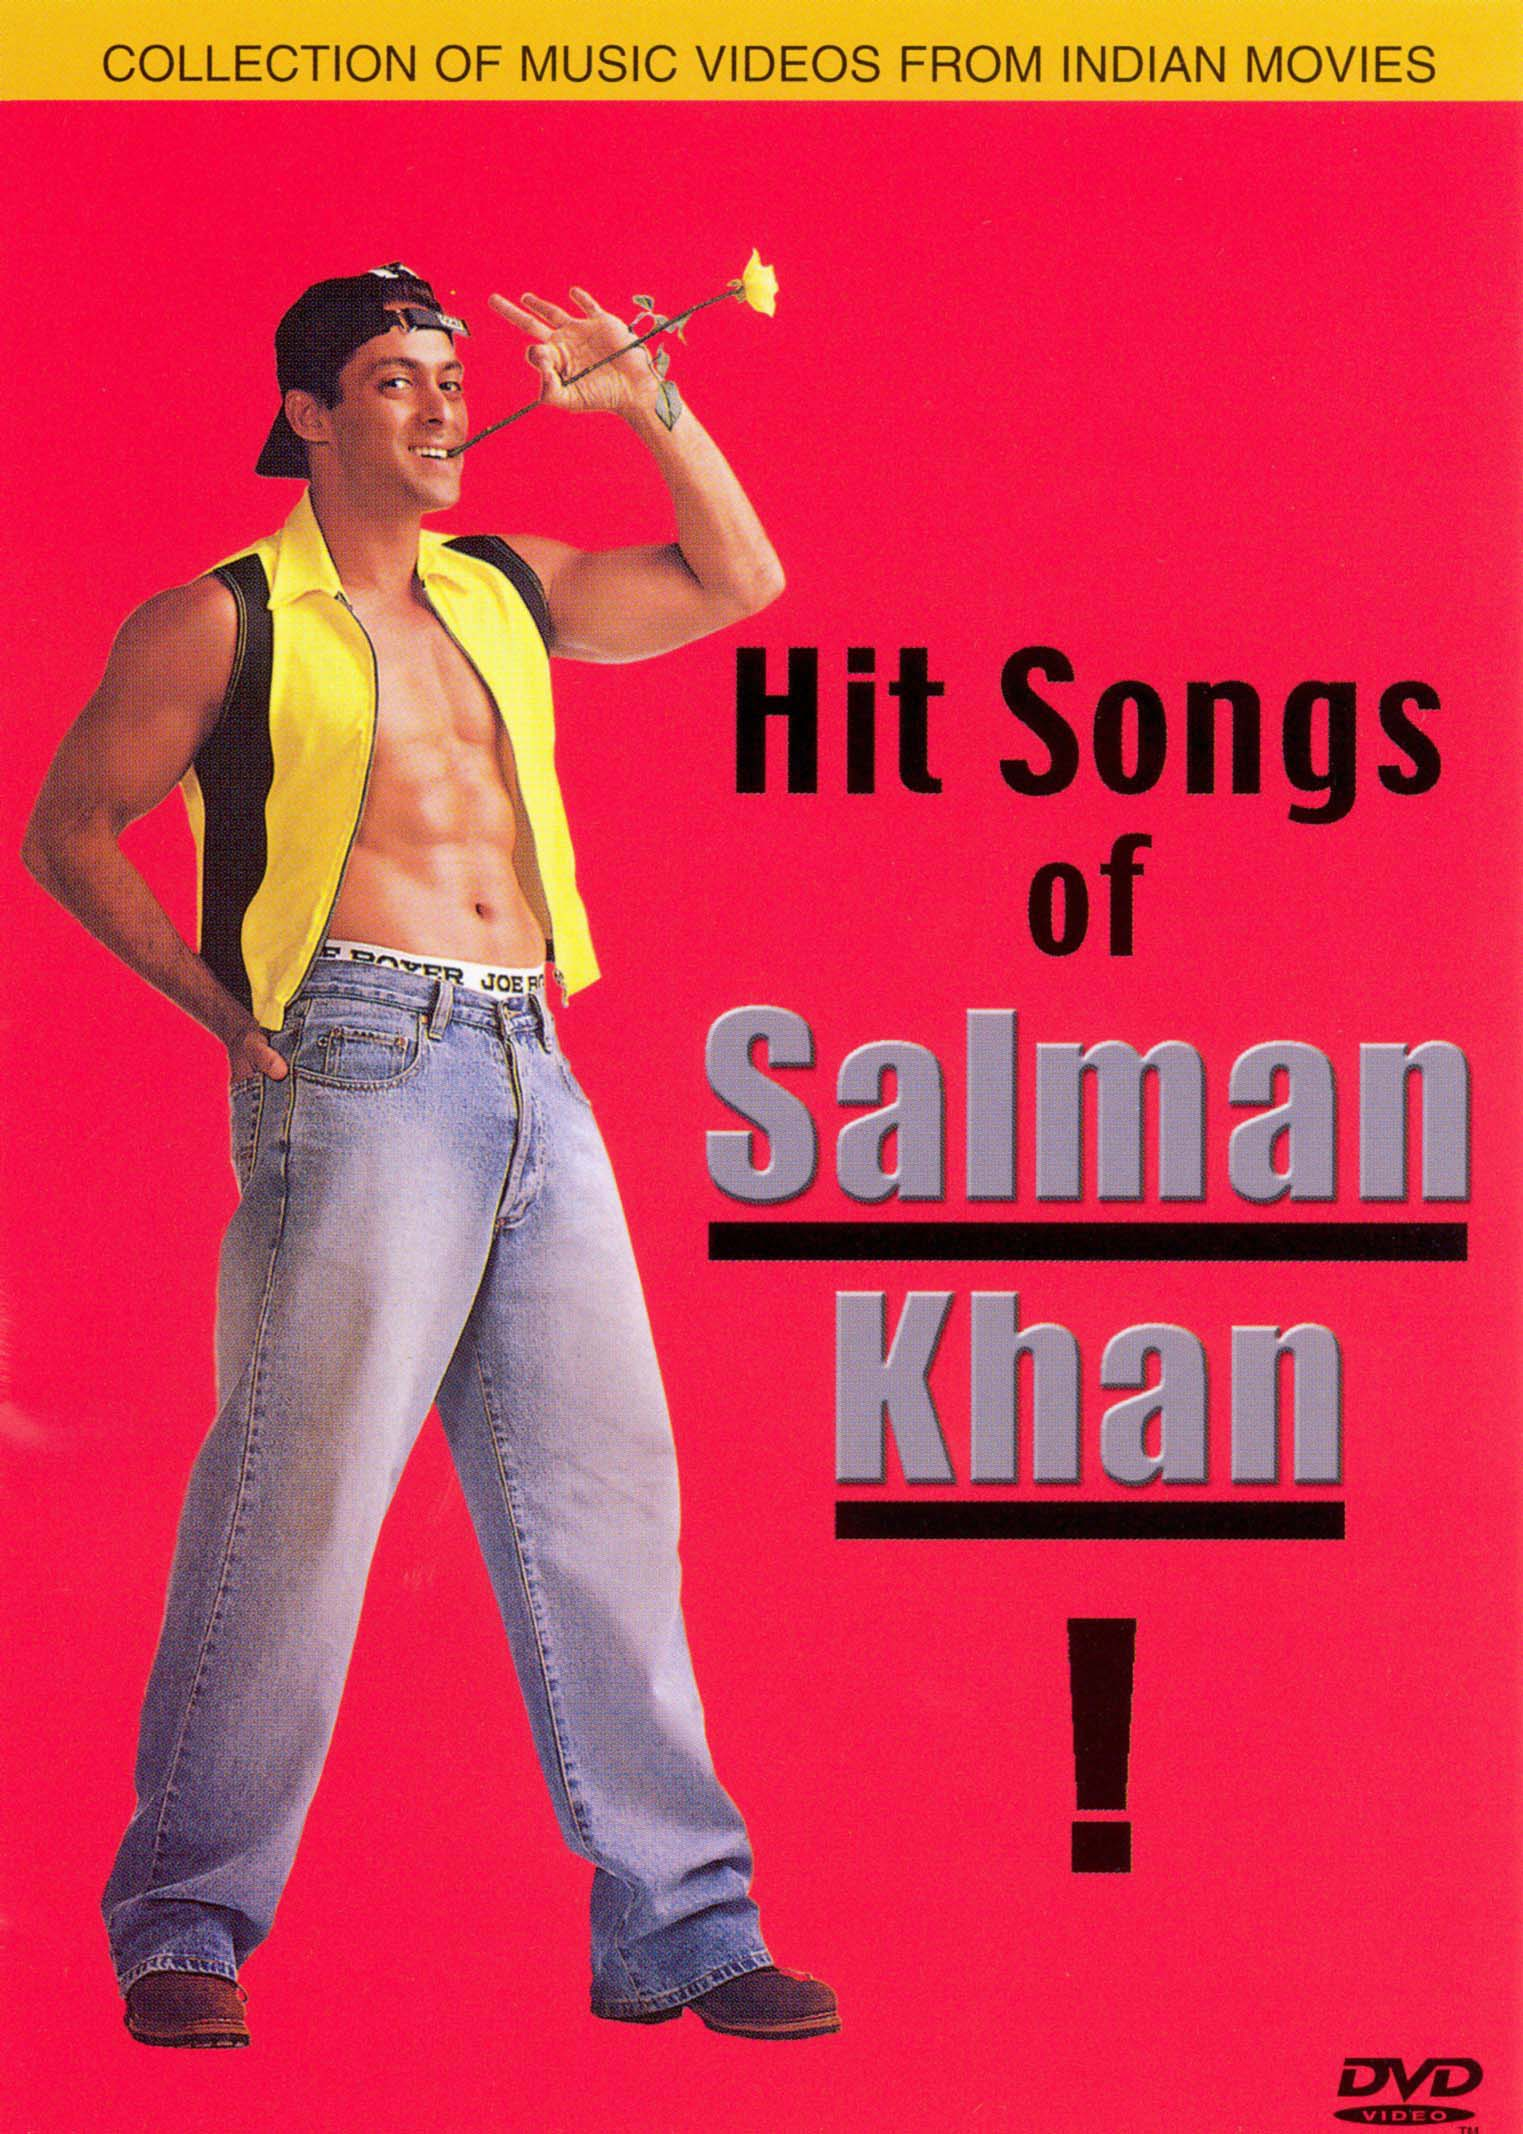 Hit Songs of Salman Khan